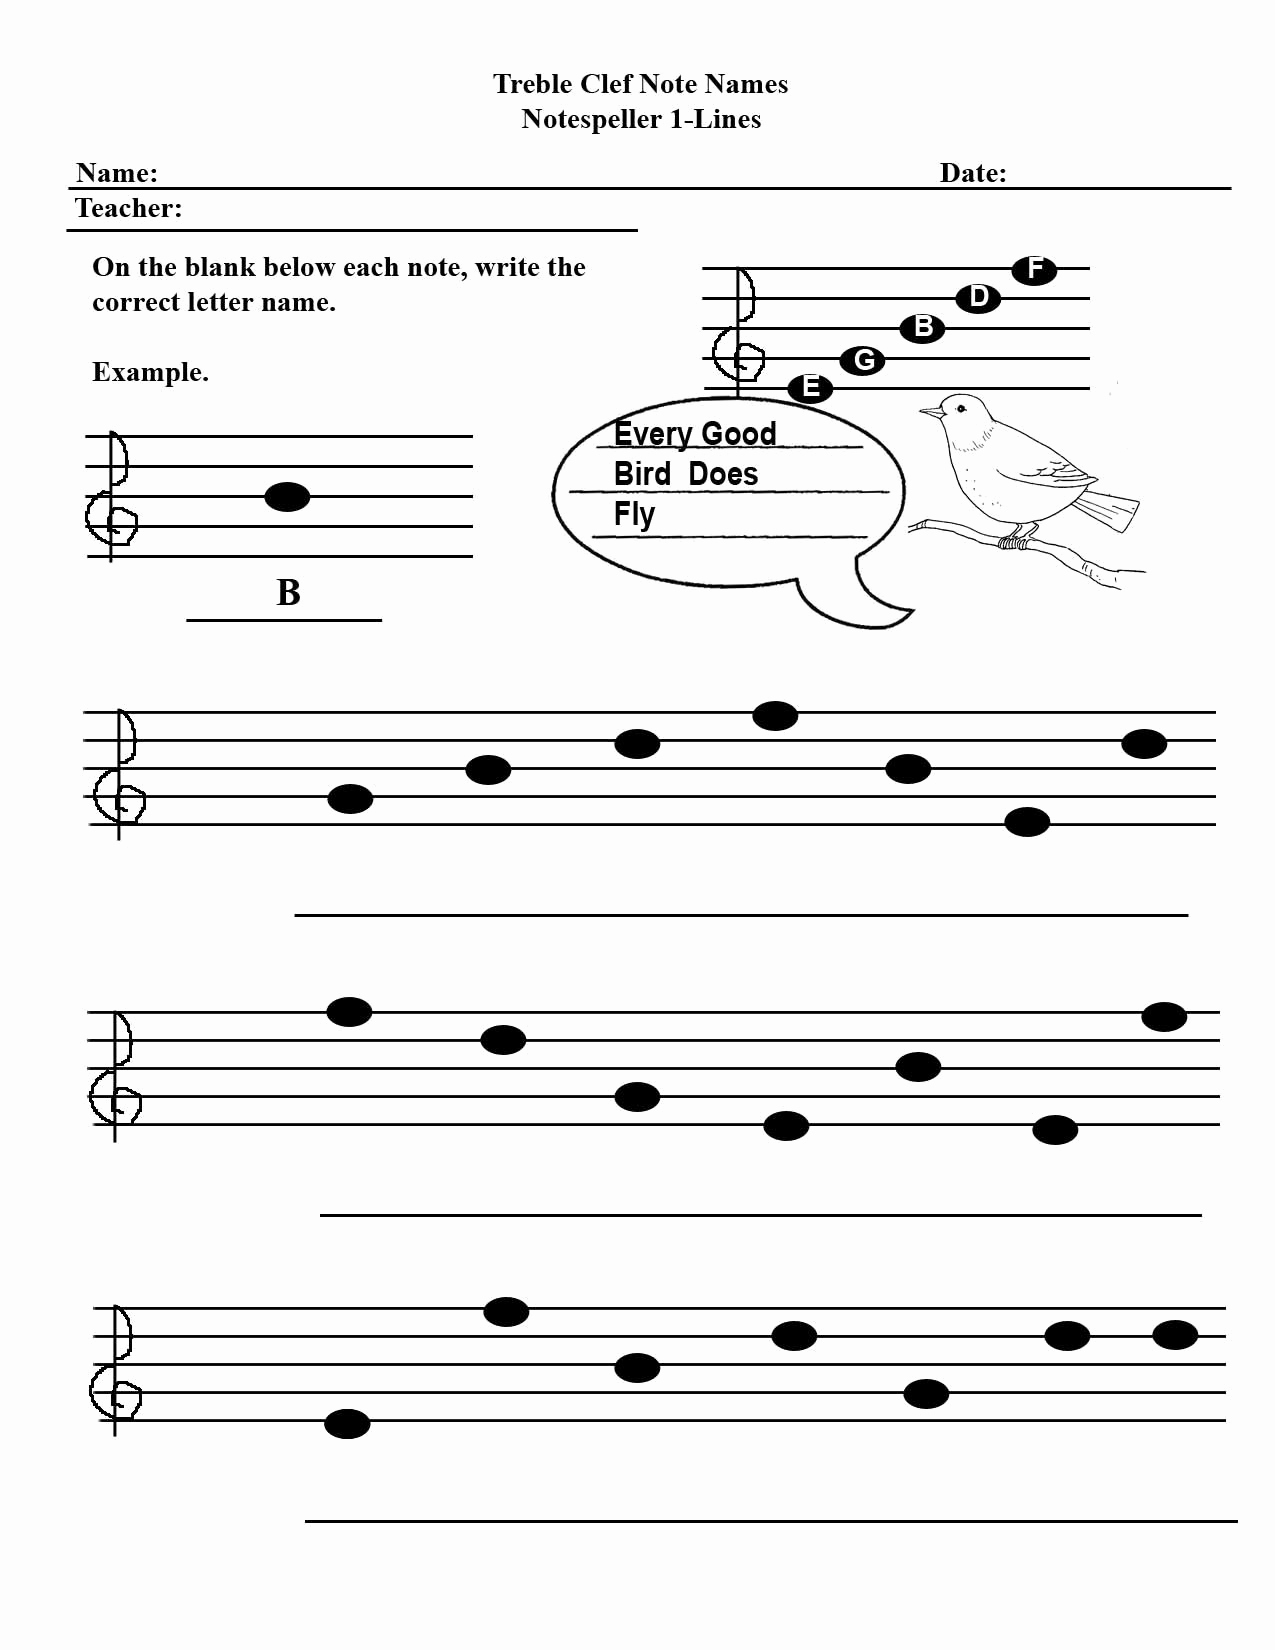 Music theory Worksheet for Kids Beautiful Christy Lovenduski Teaching Studio Elementary Music